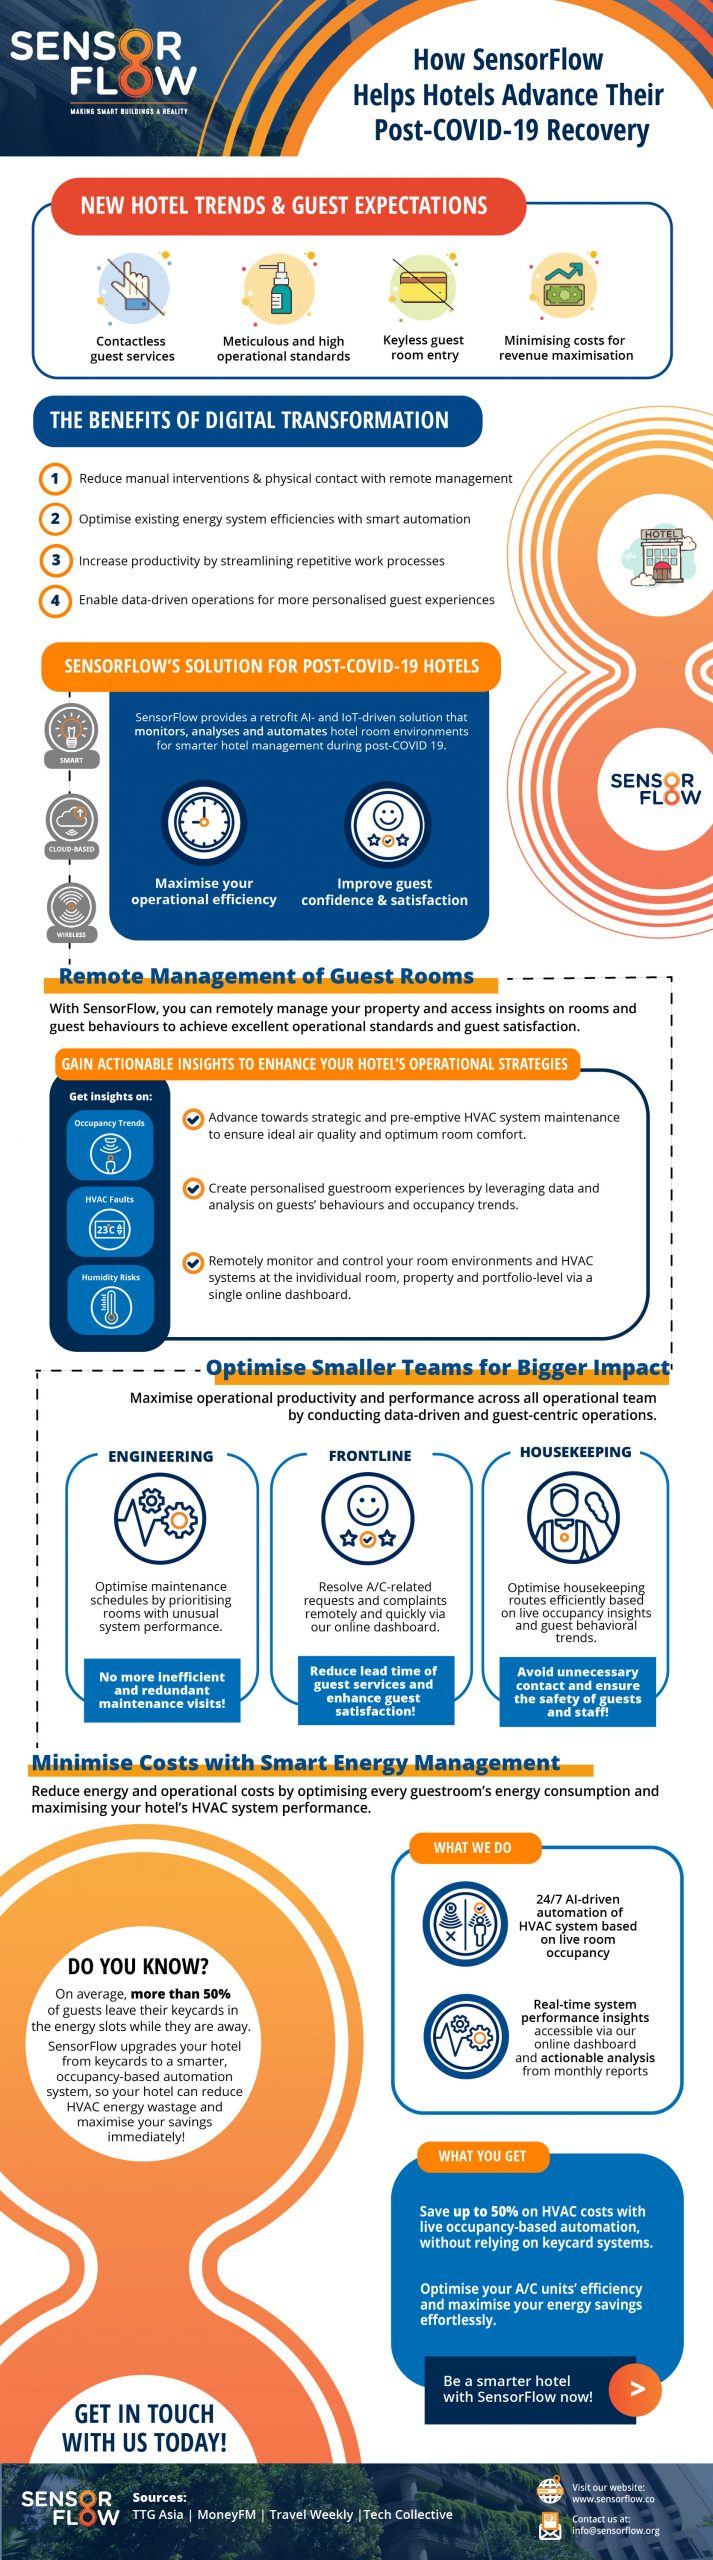 Infographic on how SensorFlow helps hotels adapt to post-COVID-19 hotel trends and contactless guest experiences